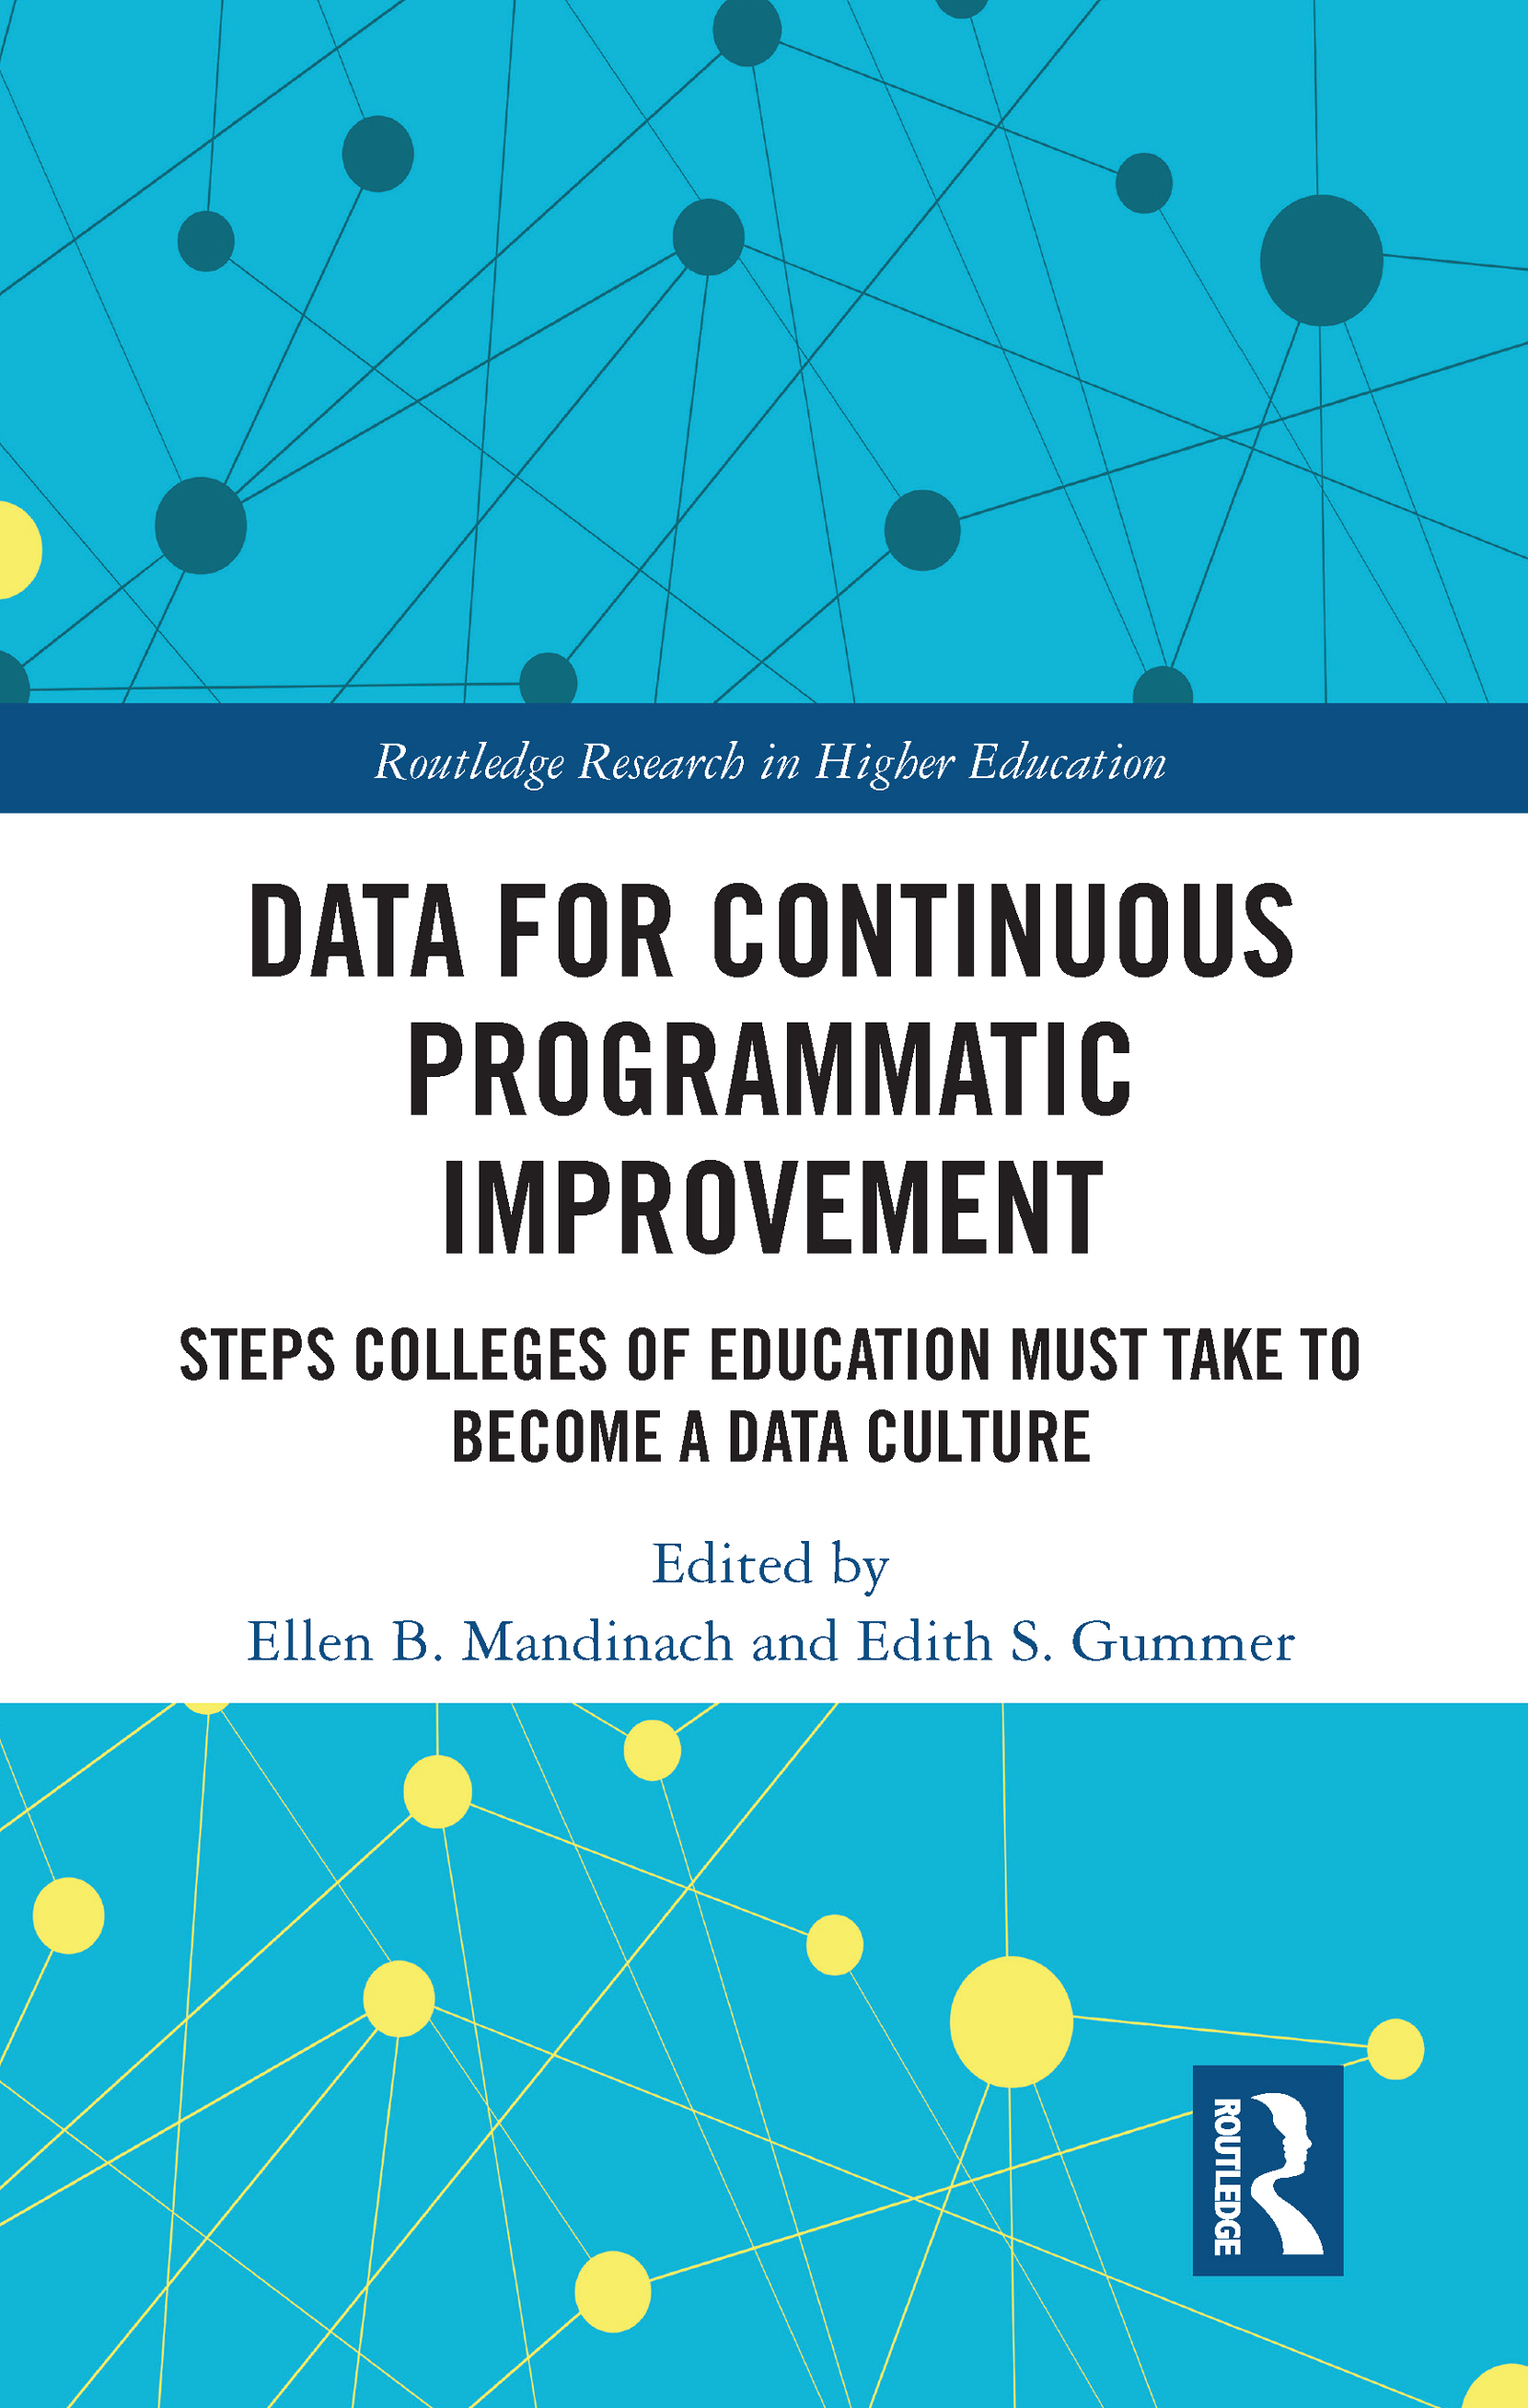 Data for Continuous Programmatic Improvement